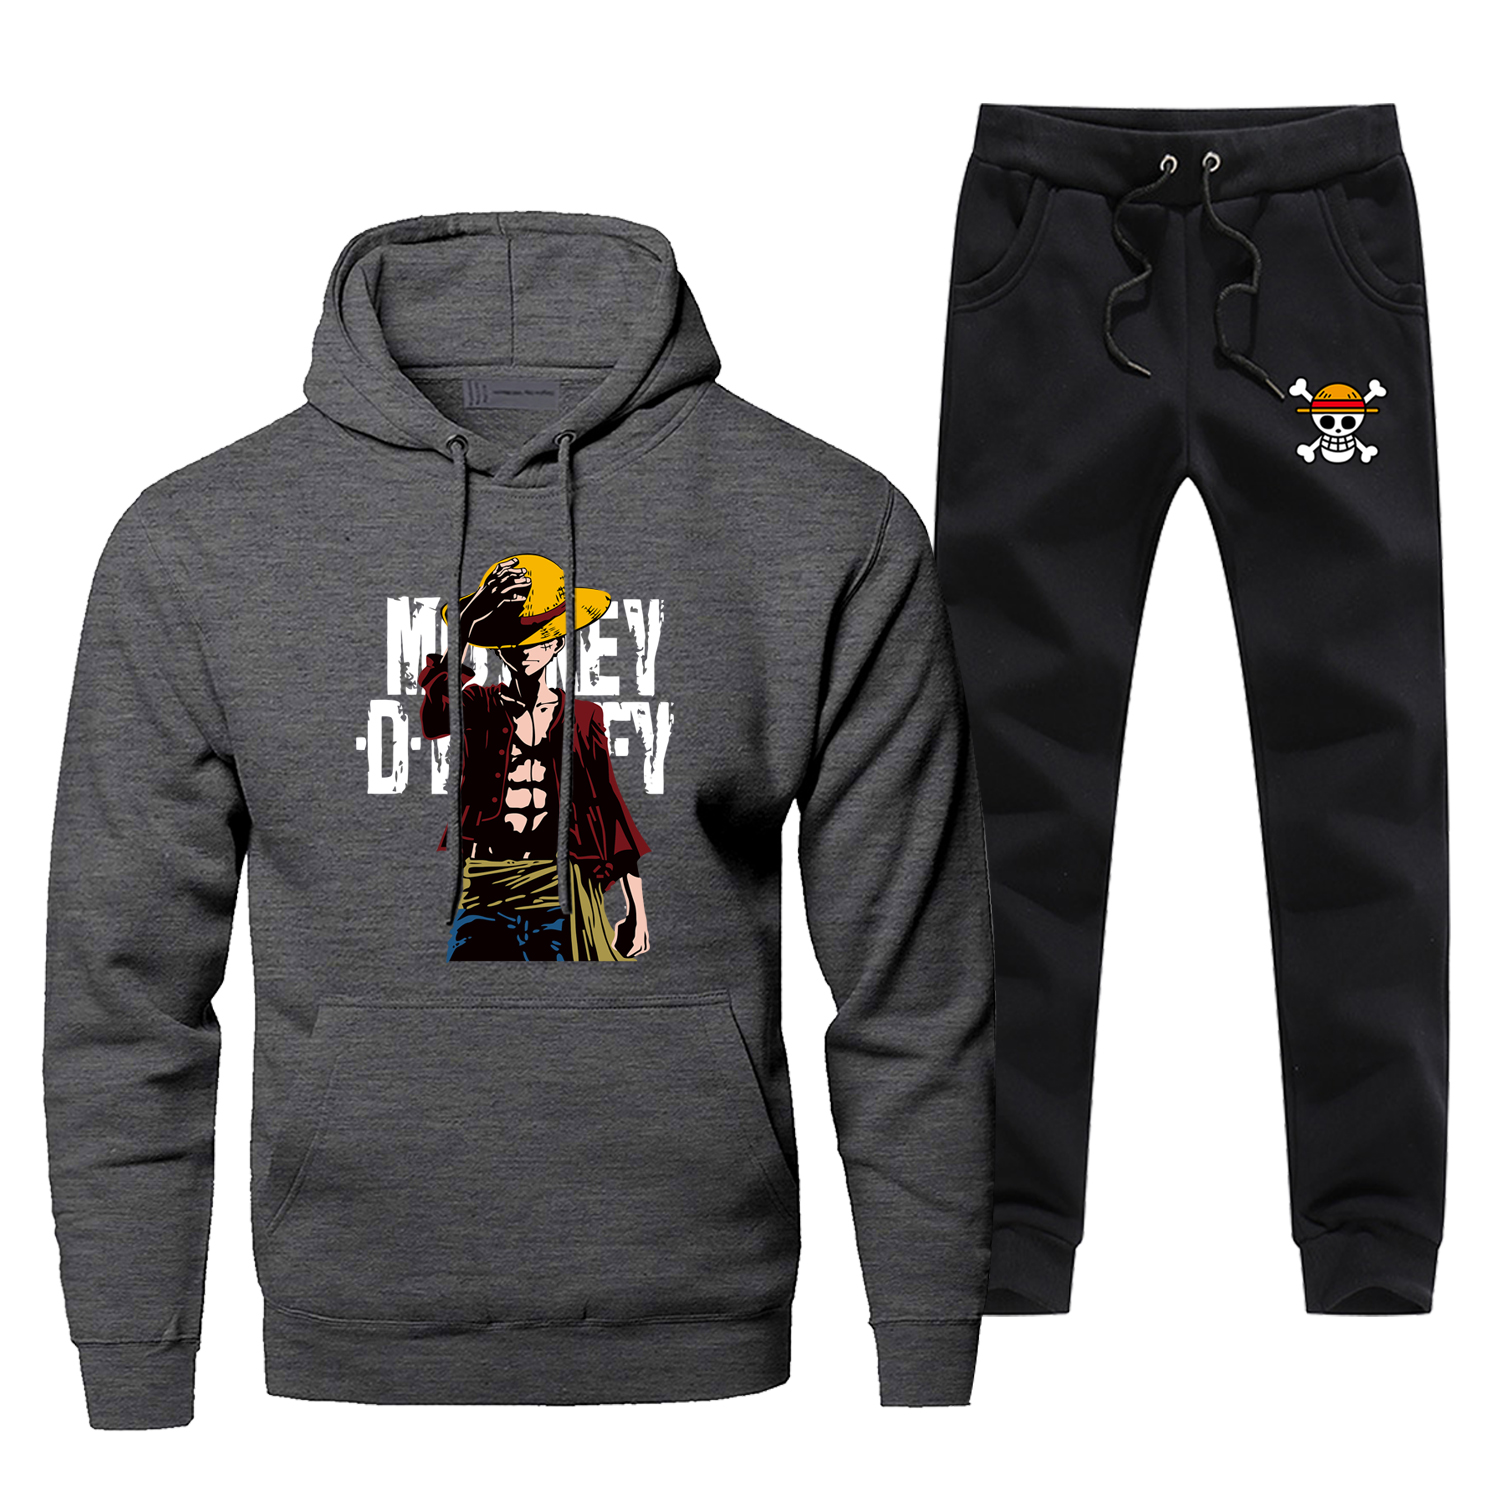 Japan Anime One Piece Monkey D Luffy Sweatshirts Hoodie Harajuku Male Set Casual Men's Jogging Winter Bodywarmer Men's Sweatsuit